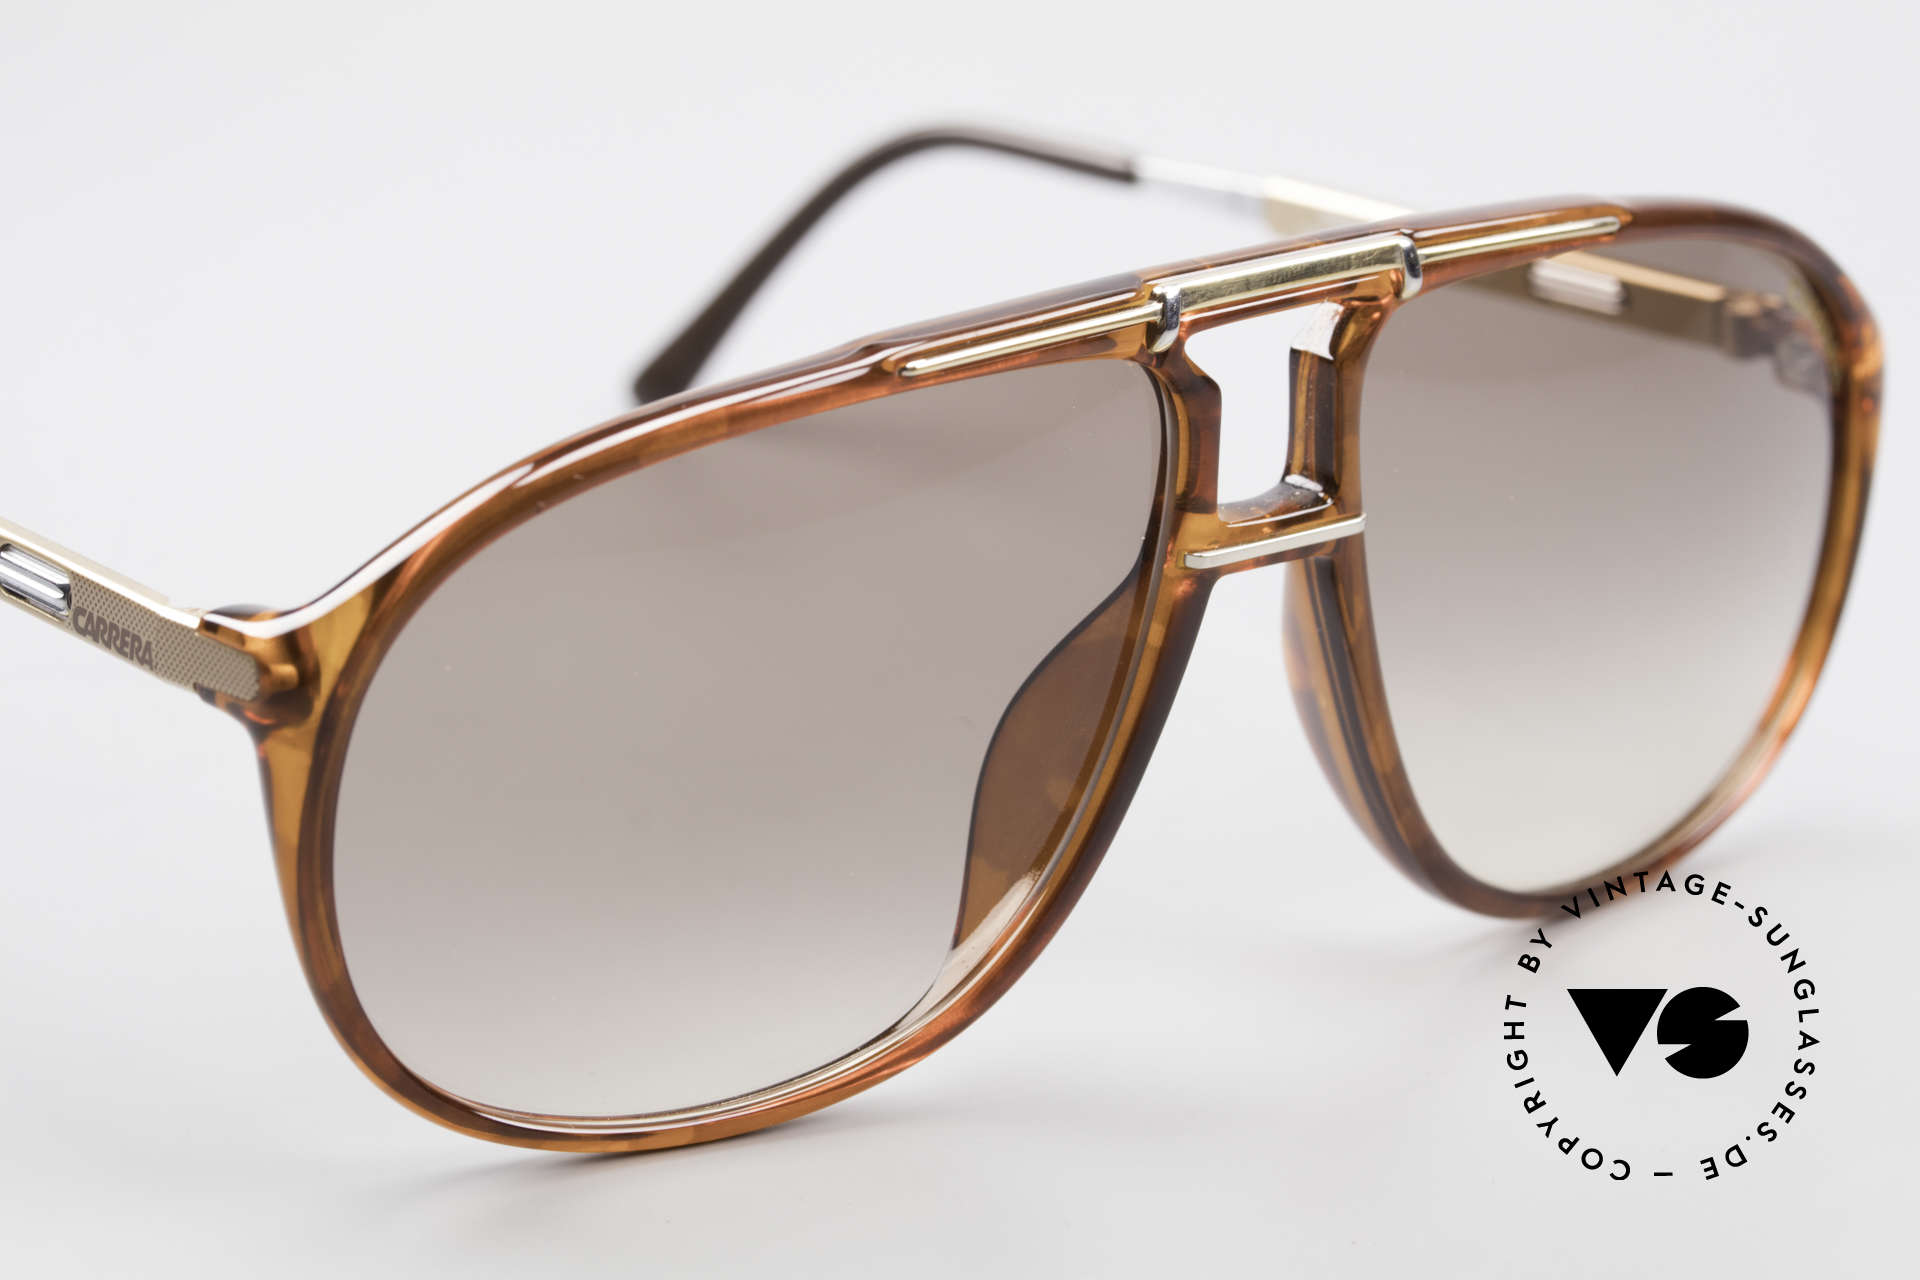 Carrera 5323 Adjustable Temples Vario 80's, UNWORN single item in SMALL to M size 58-12, Made for Men and Women